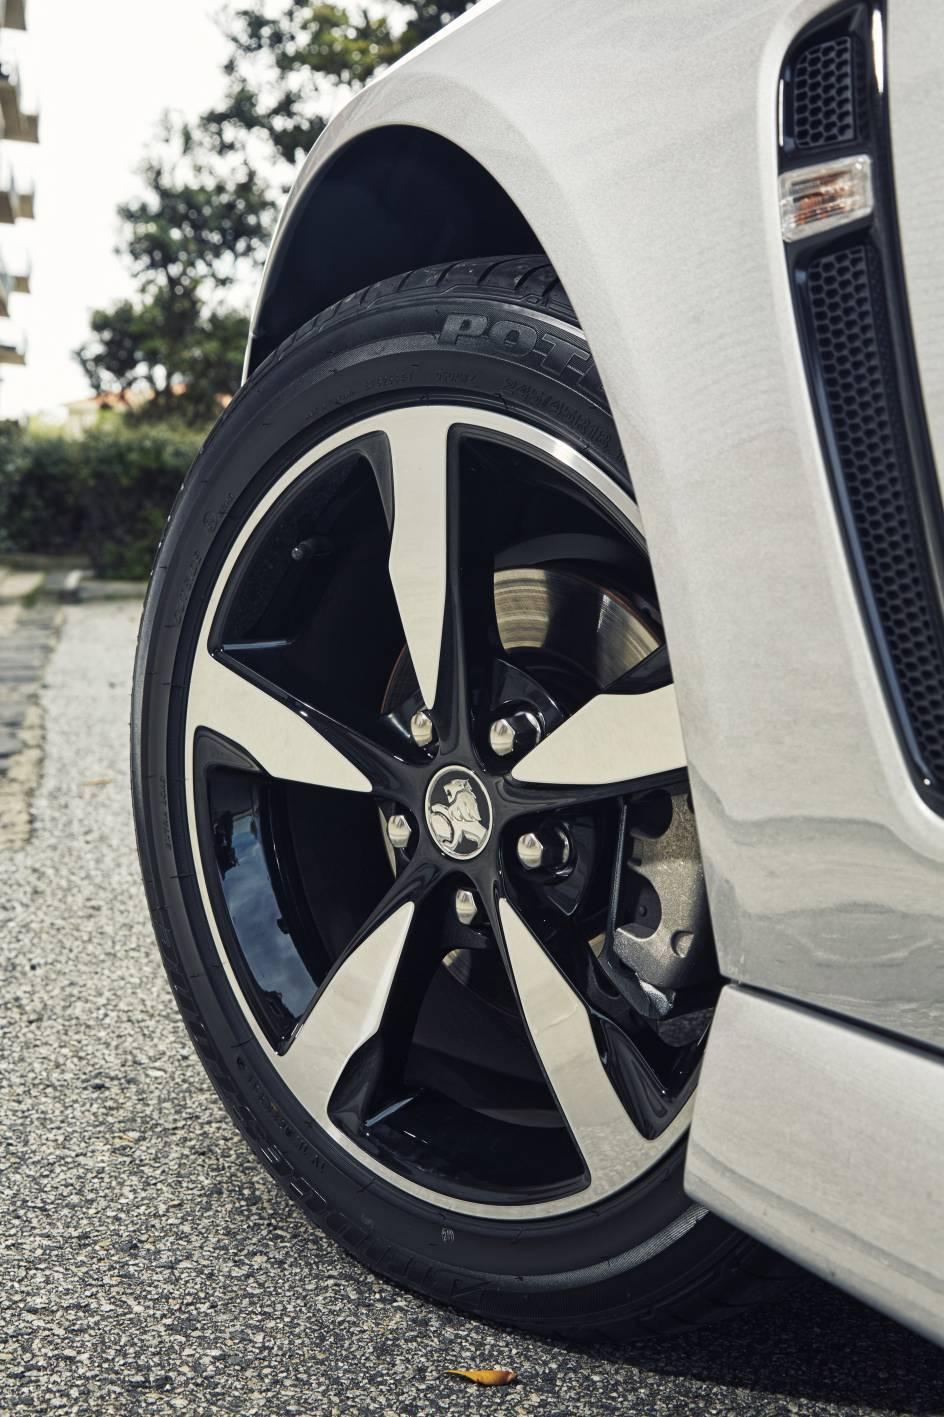 2017 Nissan 370z Convertible >> 2016 holden commodore black 18-inch wheel - ForceGT.com